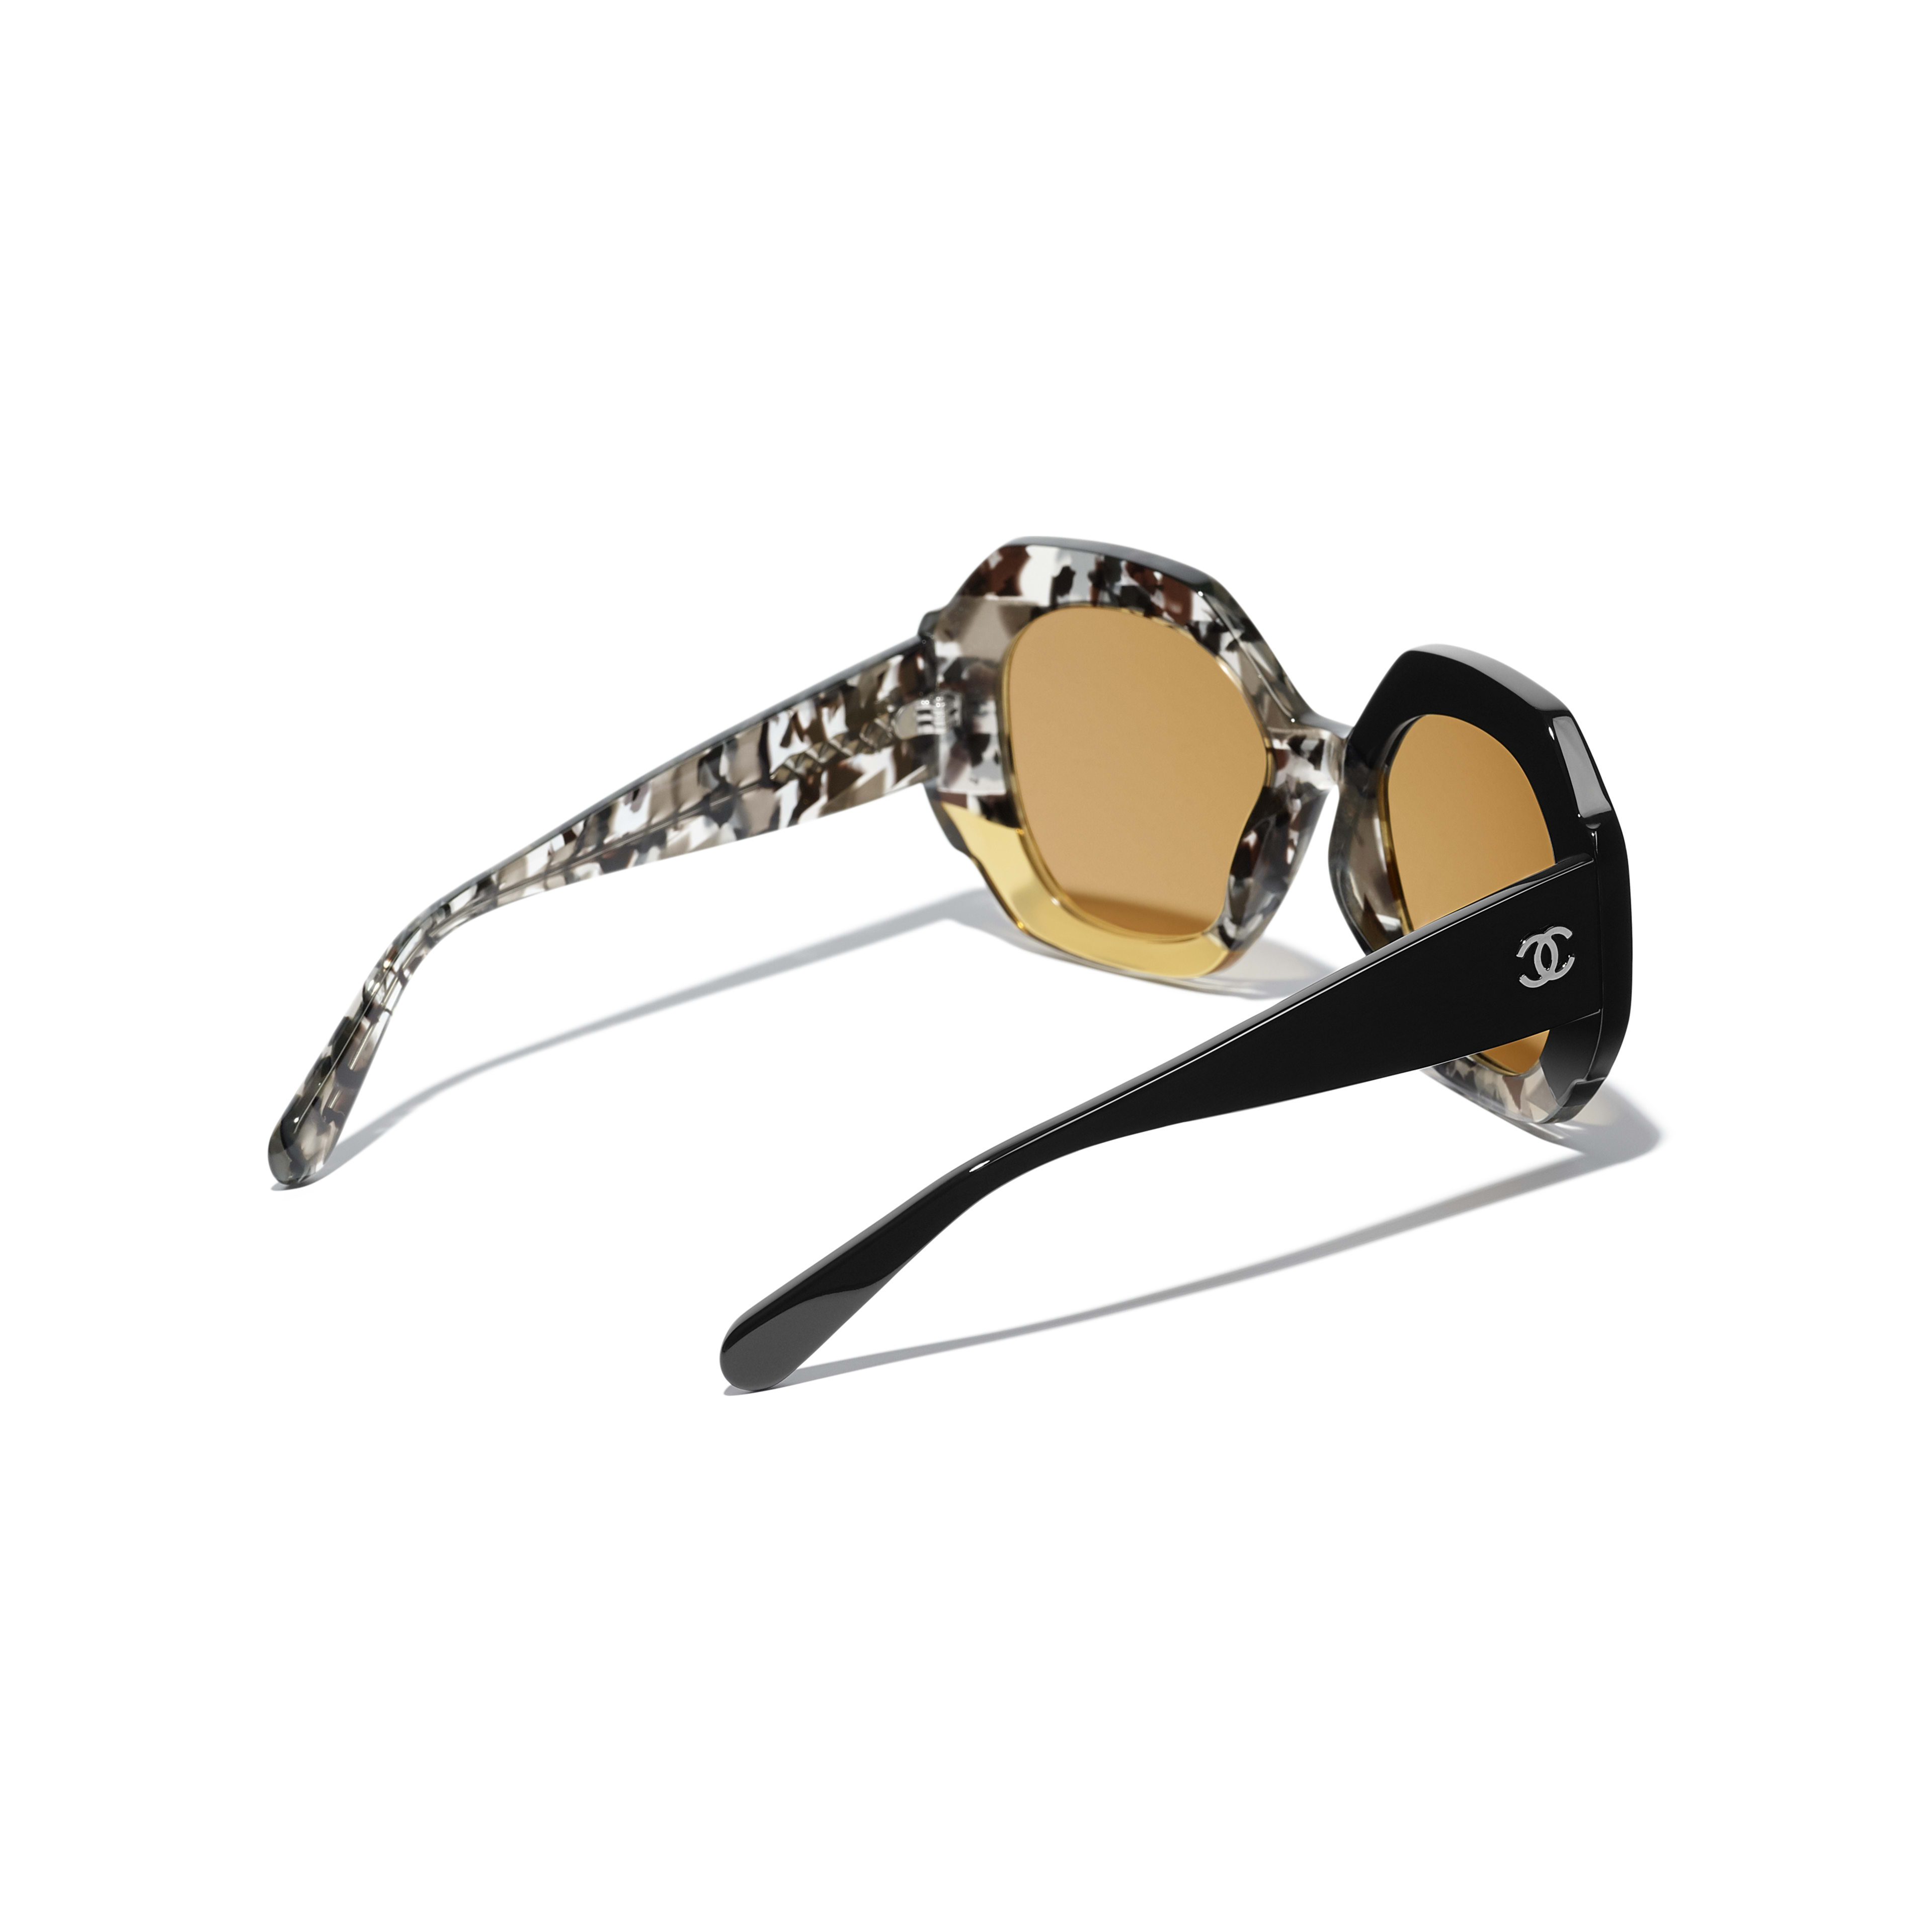 Round Sunglasses - Black, Gray & Yellow - Acetate - Extra view - see full sized version